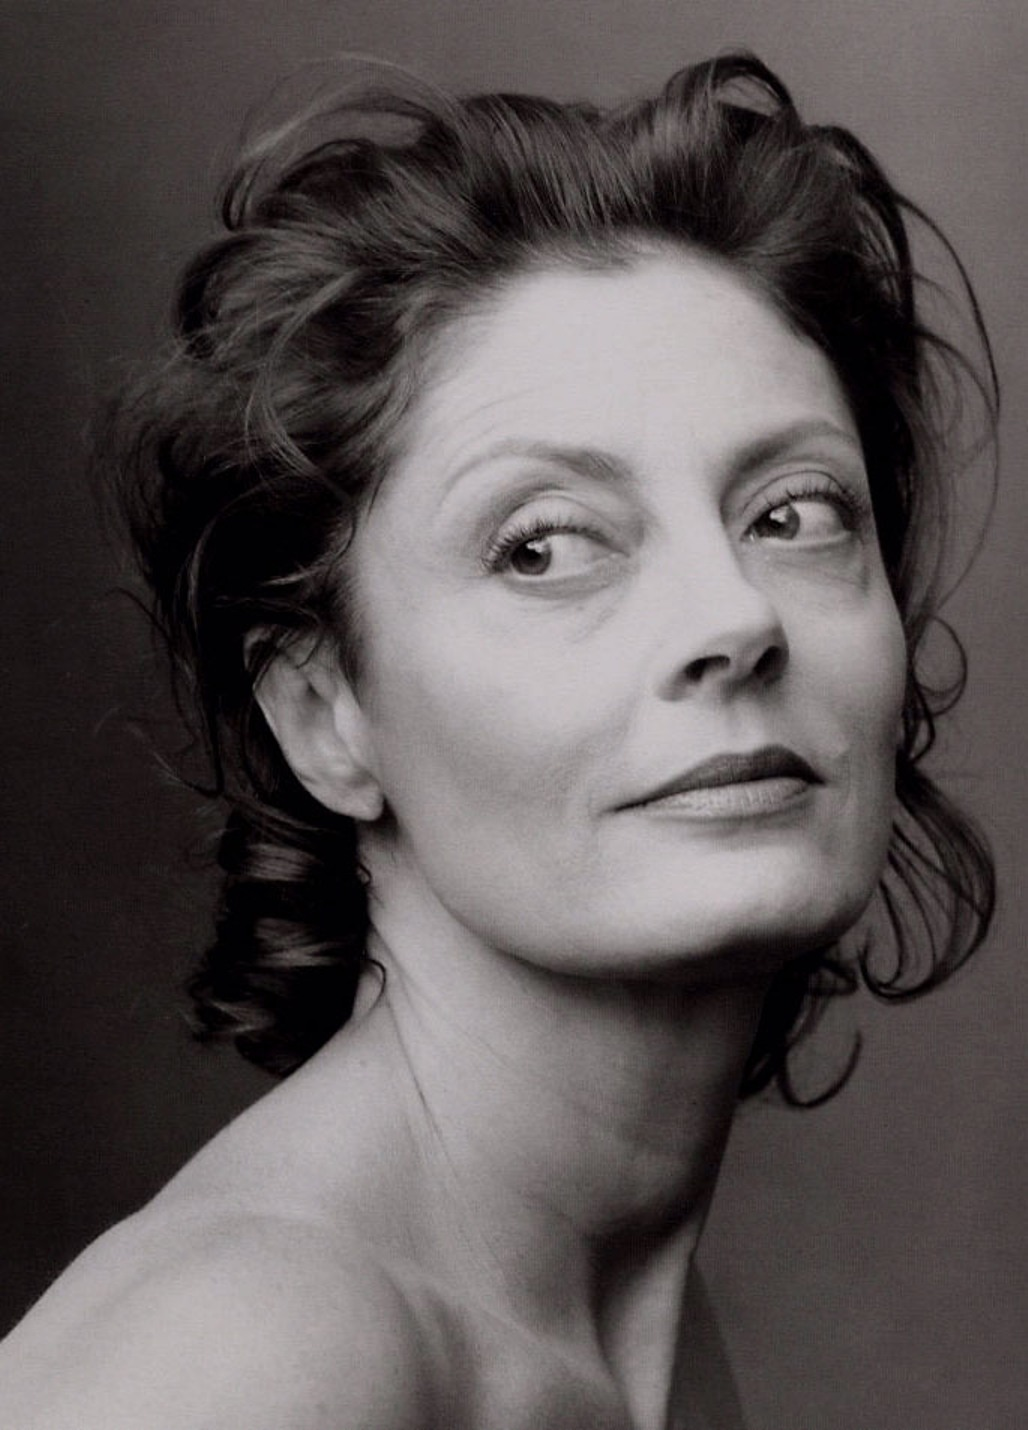 Susan sarandon atlantic city